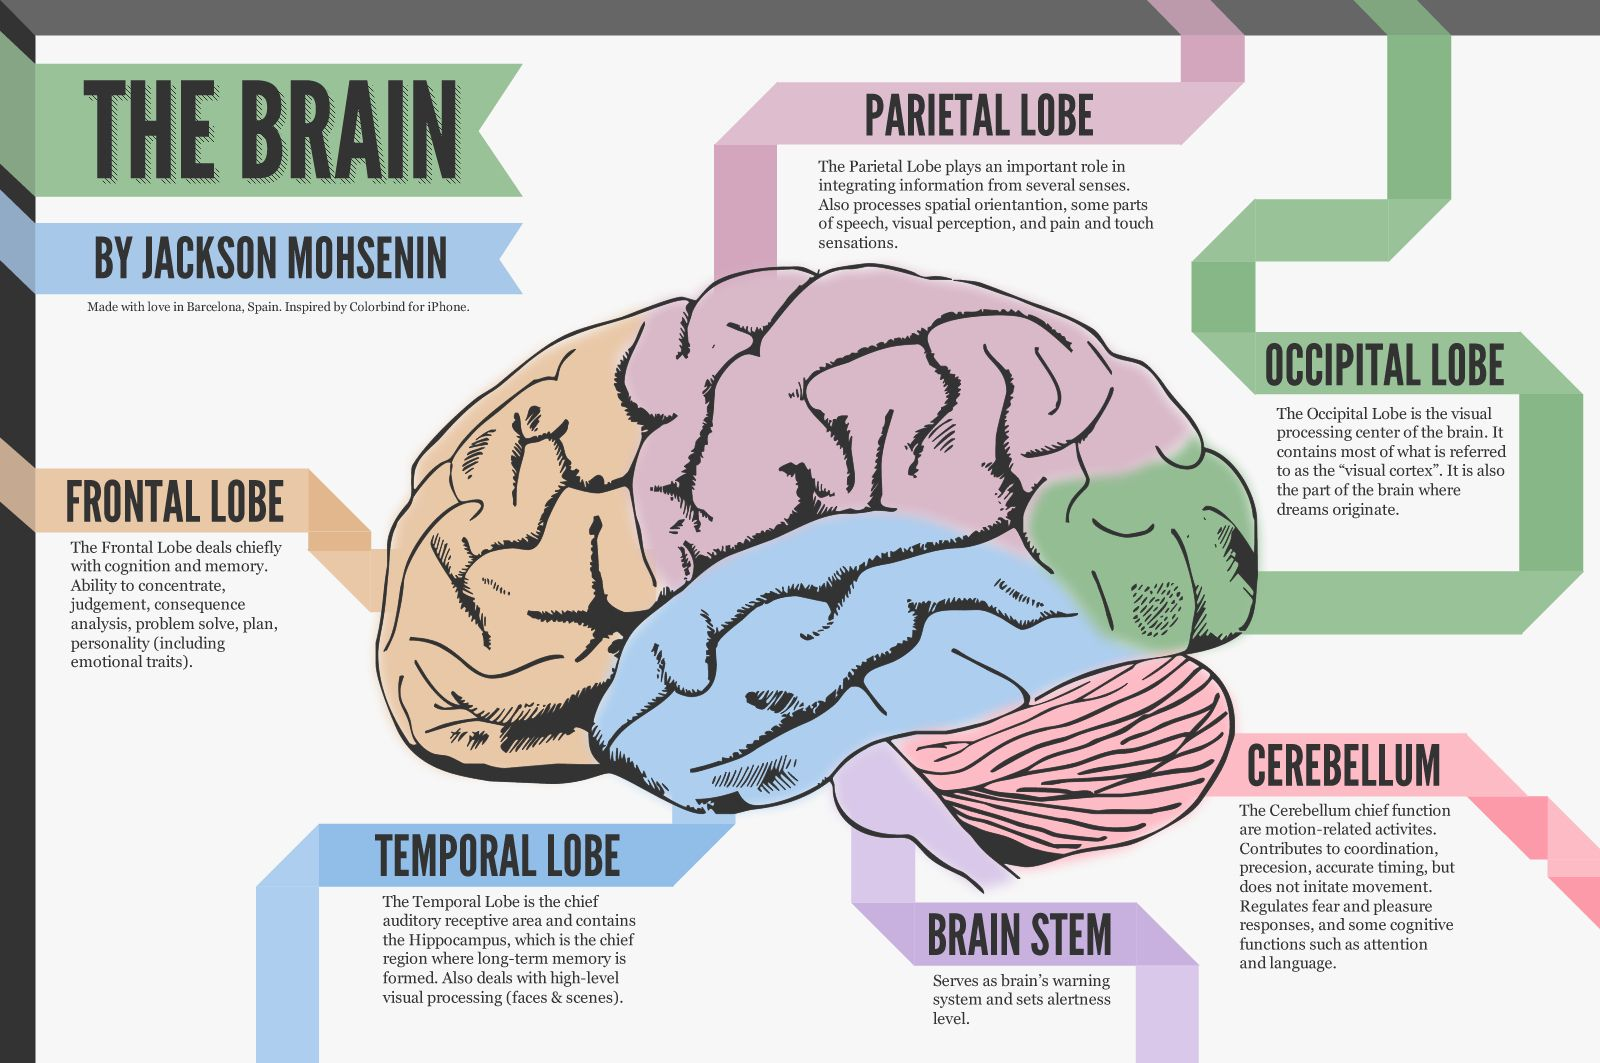 The Human Brain Diagram And Functions With Images